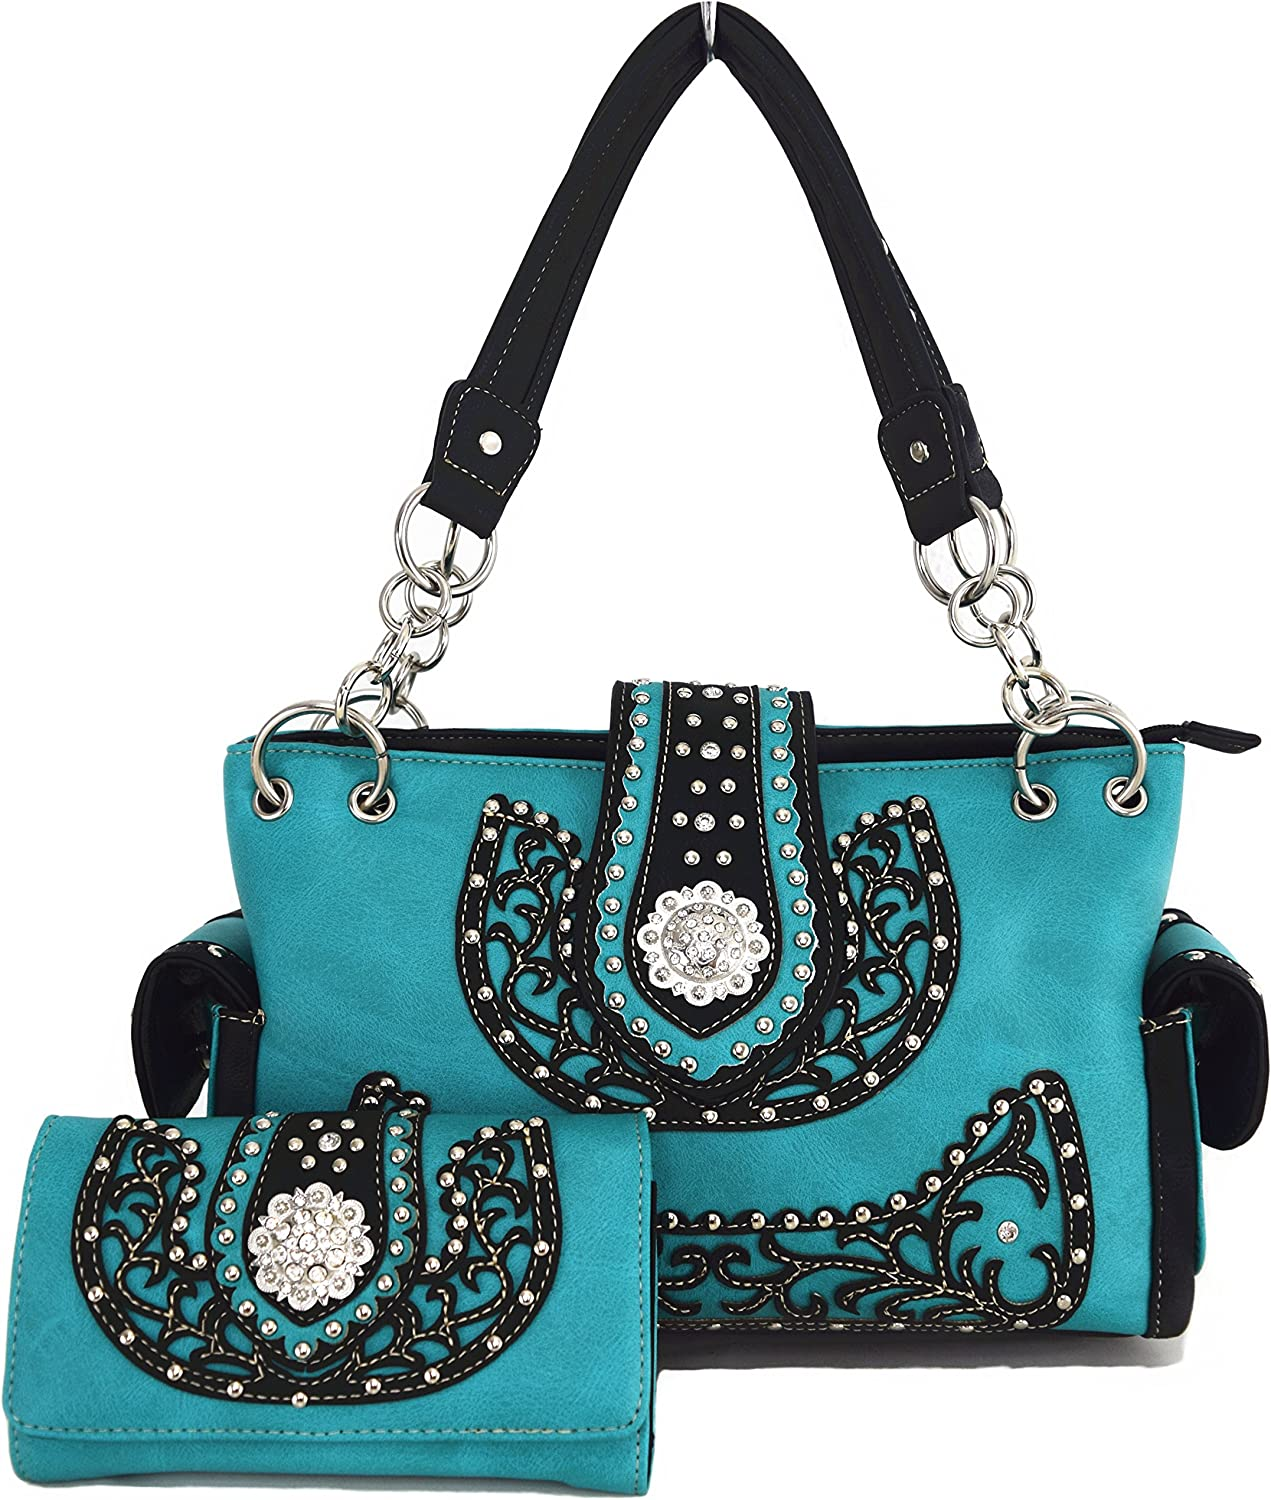 Western Cowgirl Concealed Carry Belts Rhinestone Purse Handbag Messenger Shoulder Bag Wallet Set Turq